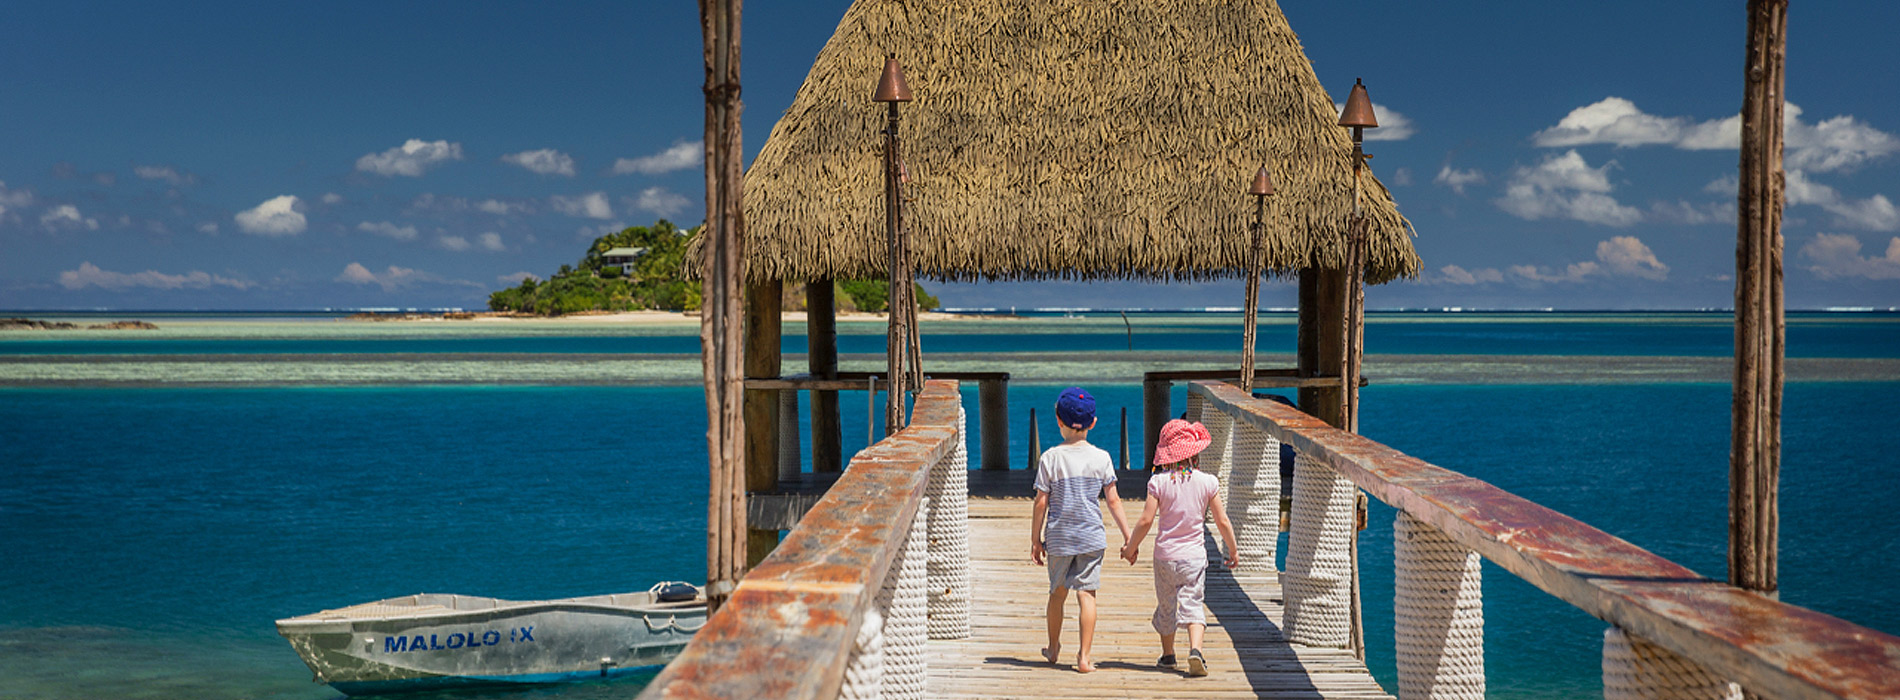 fiji packages school holidays